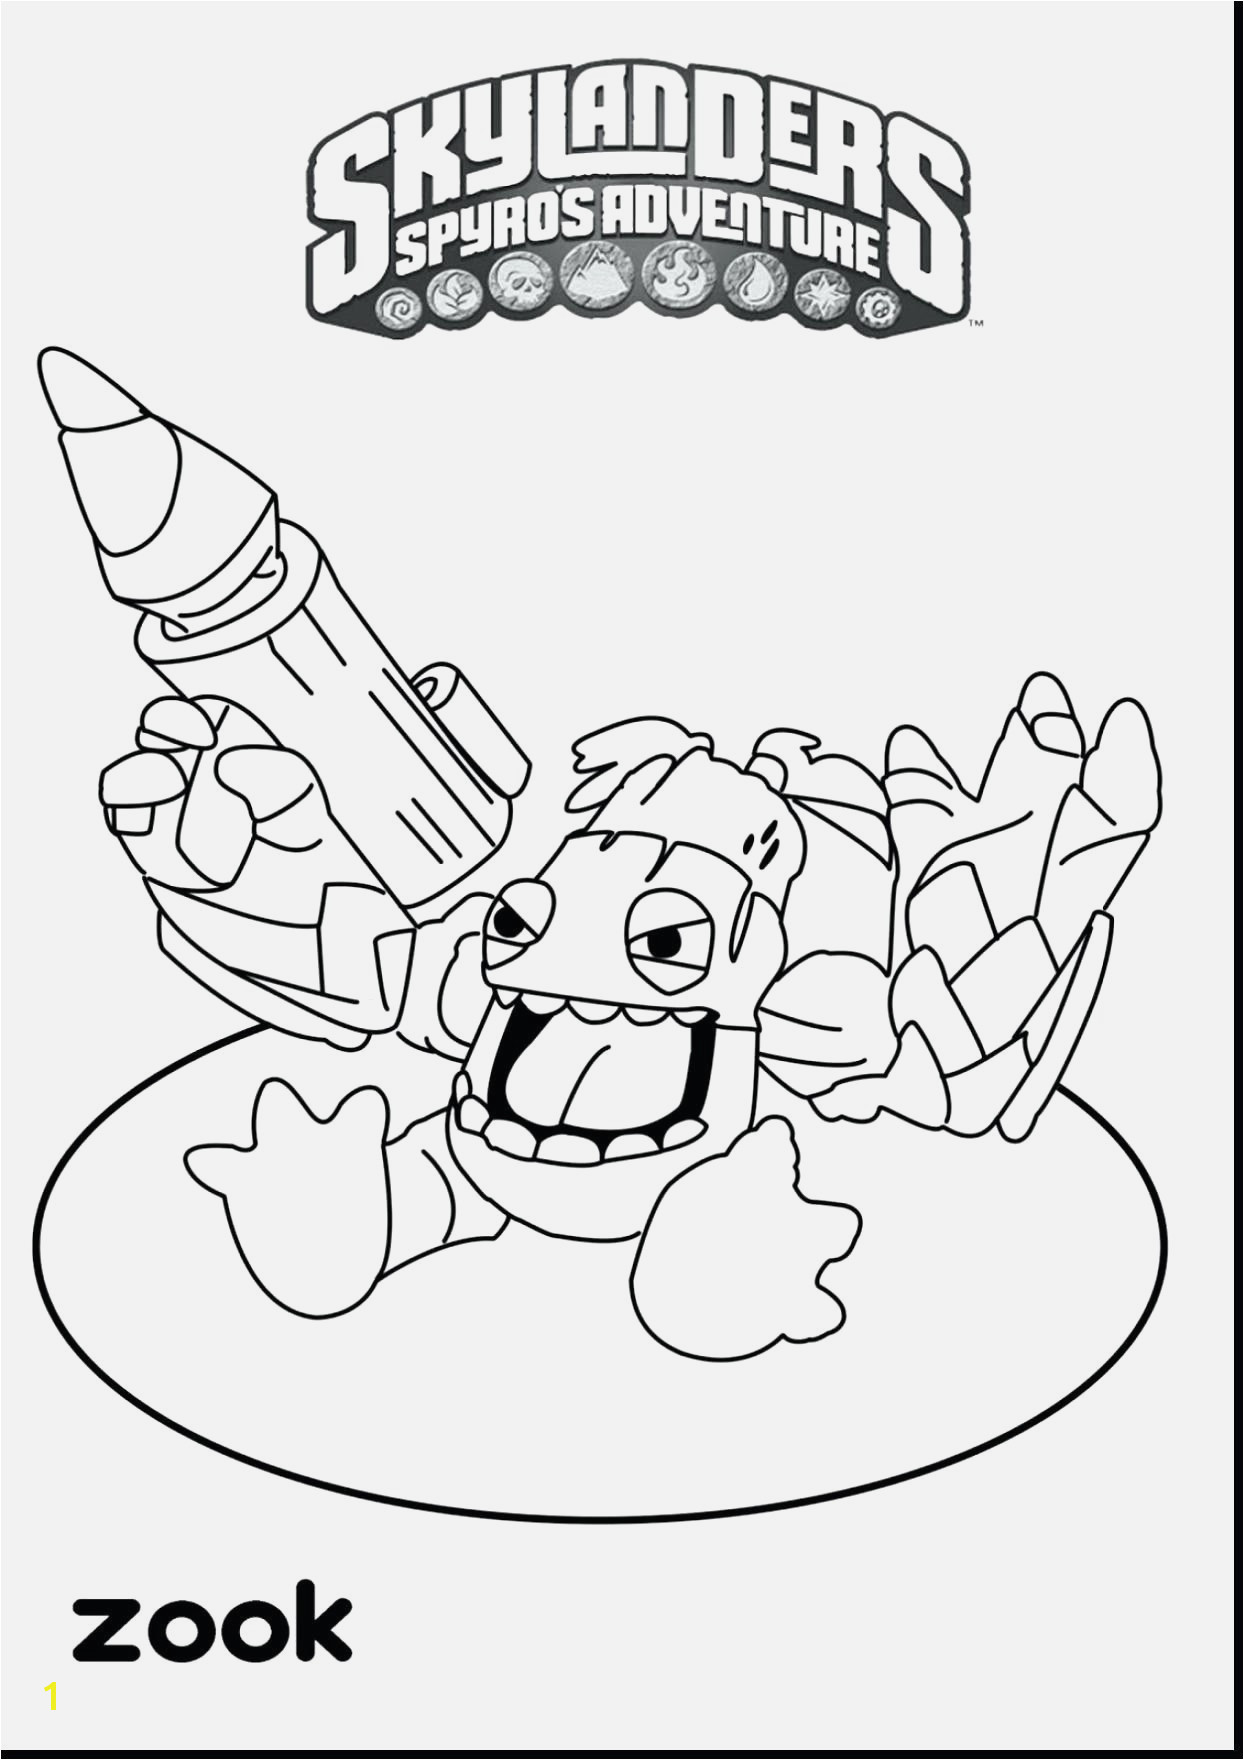 Coloring Pages About Friendship Friendship Coloring Pages Elegant Best Coloring Pages for Girls